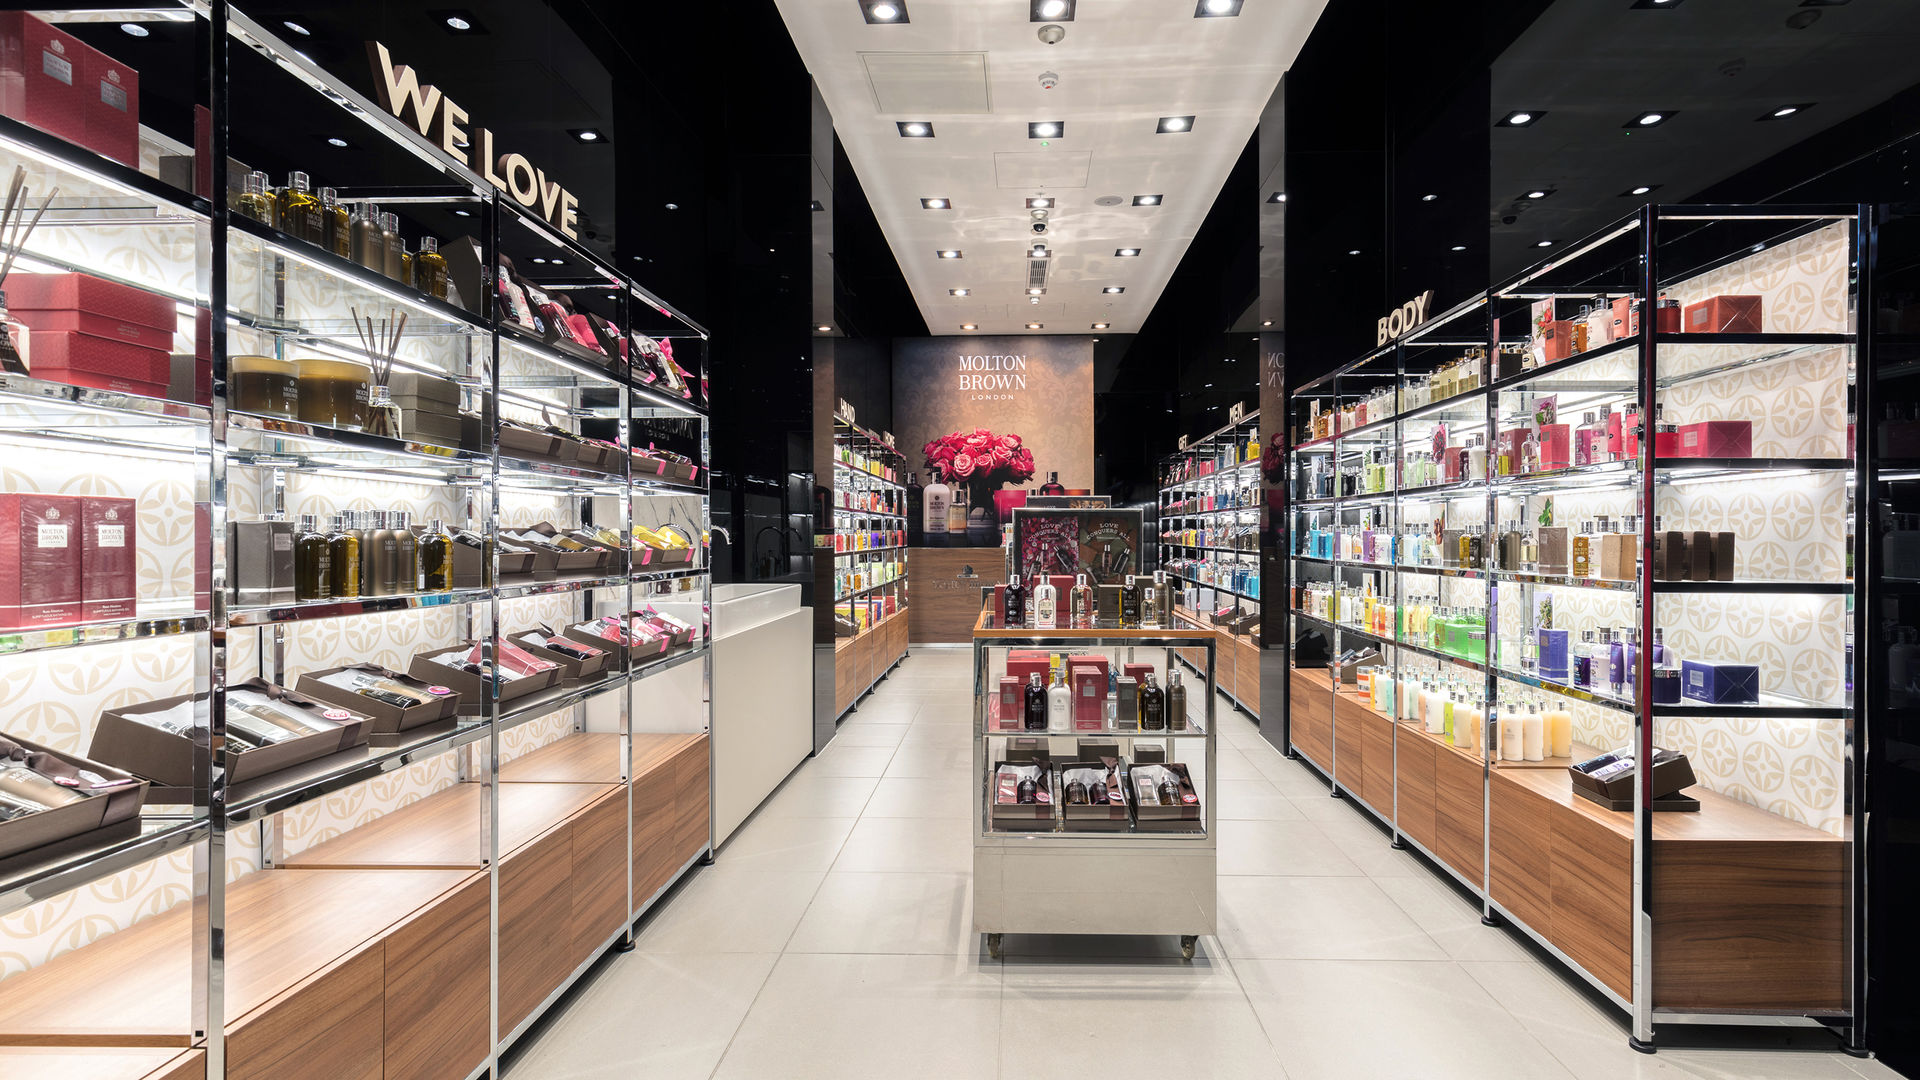 Molton Brown, Stratford, London (UK)_web_16-9